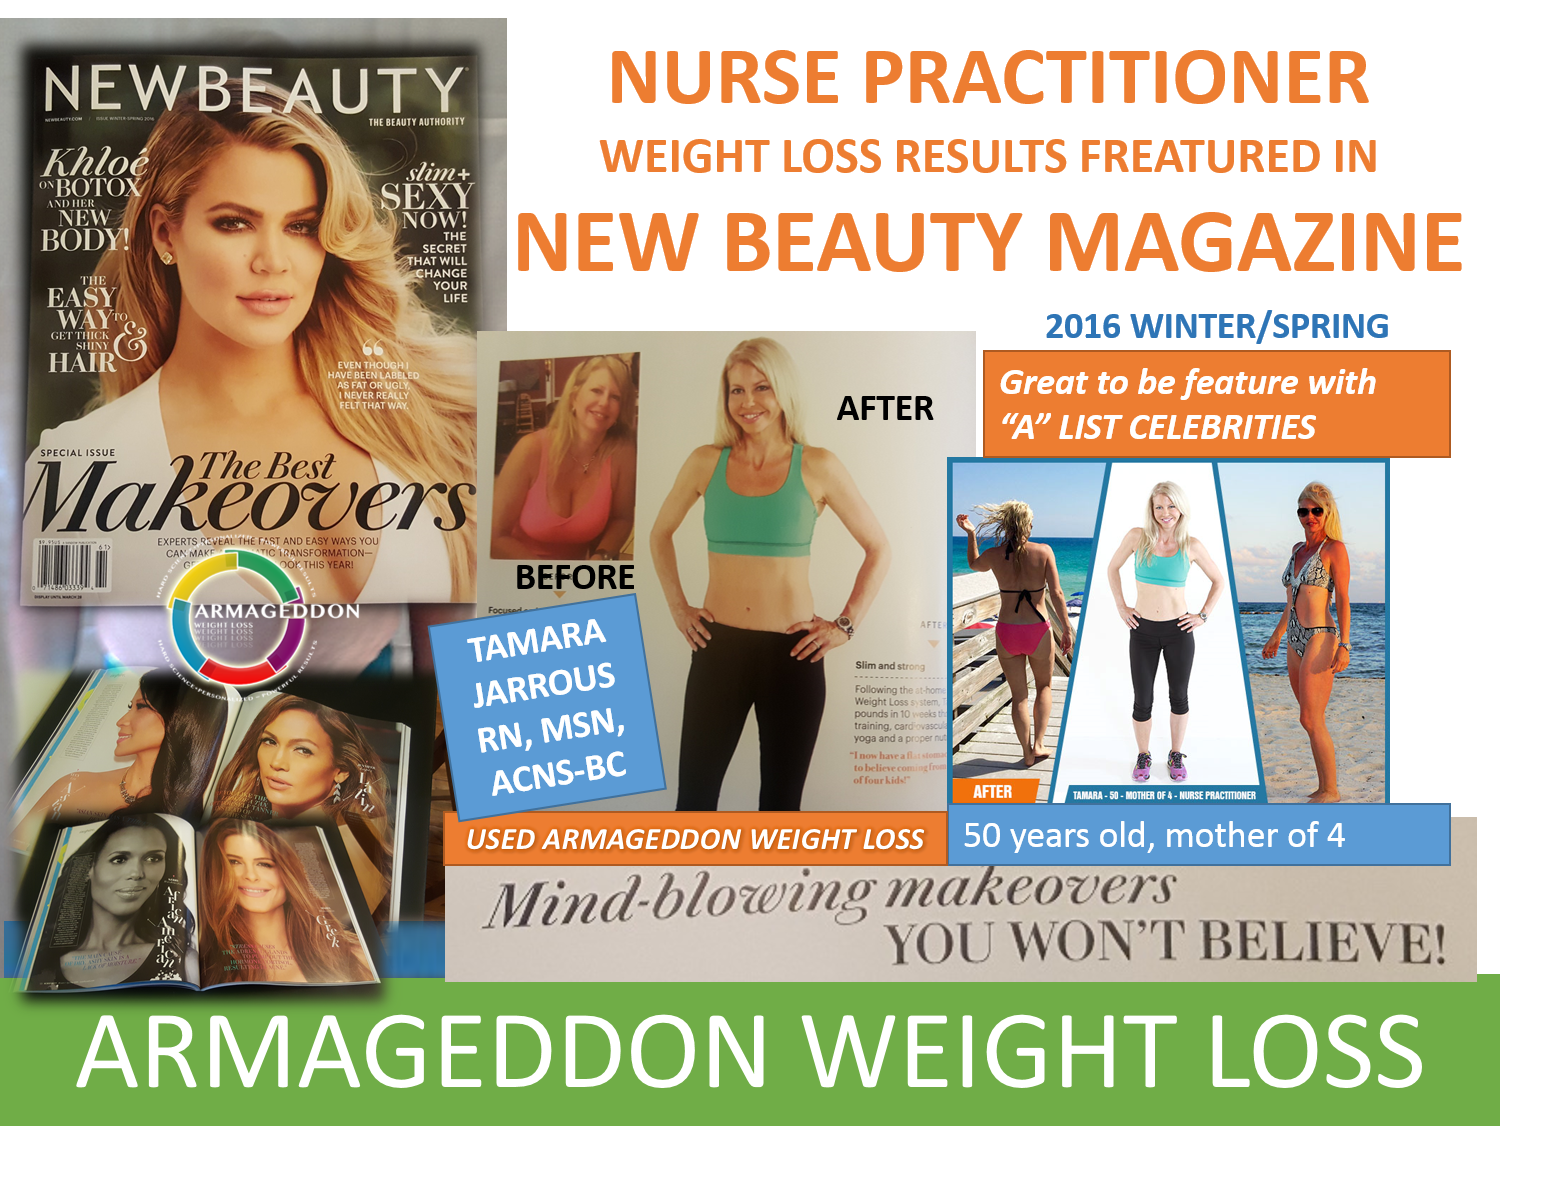 TAMARA JARROUS - RN MSN, NEW BEAUTY MAGAZINE - ARMAGEDDON WEIGHT LOSS - BEST WEIGHT LOSS DVD FOR WOMEN